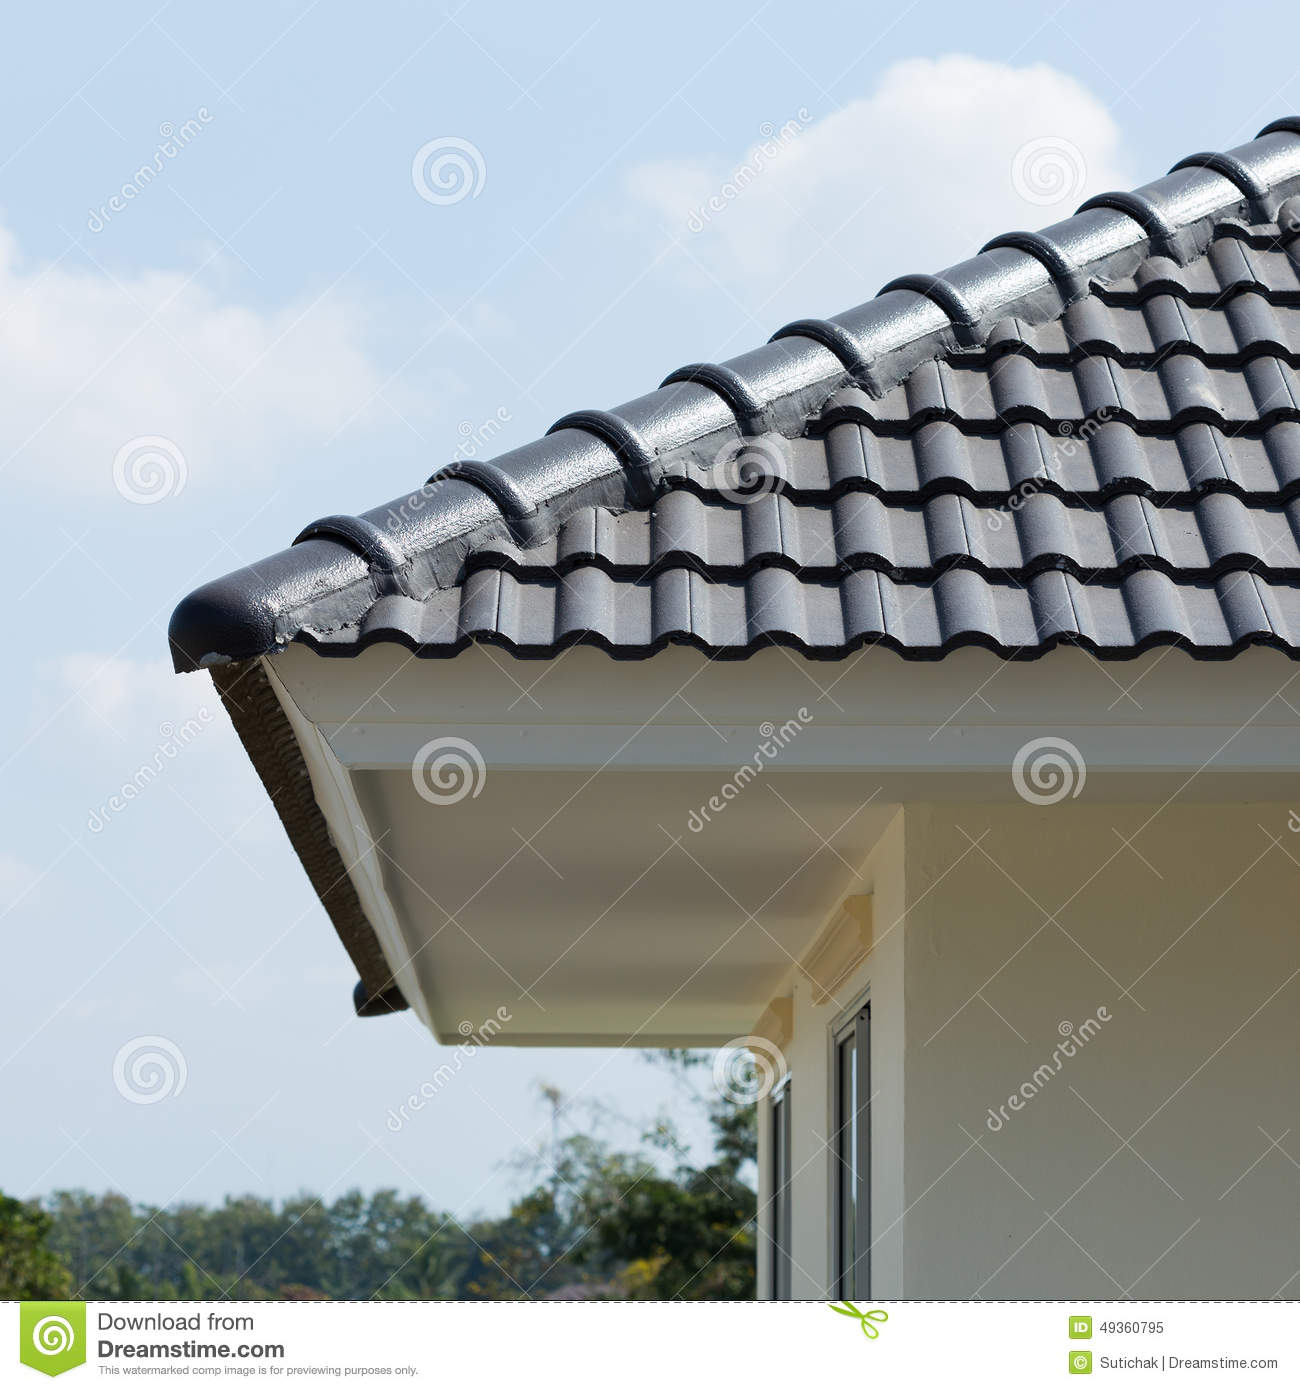 Black roof tiles on house stock photo image 49360795 - Houses with ceramic tile roofing ...